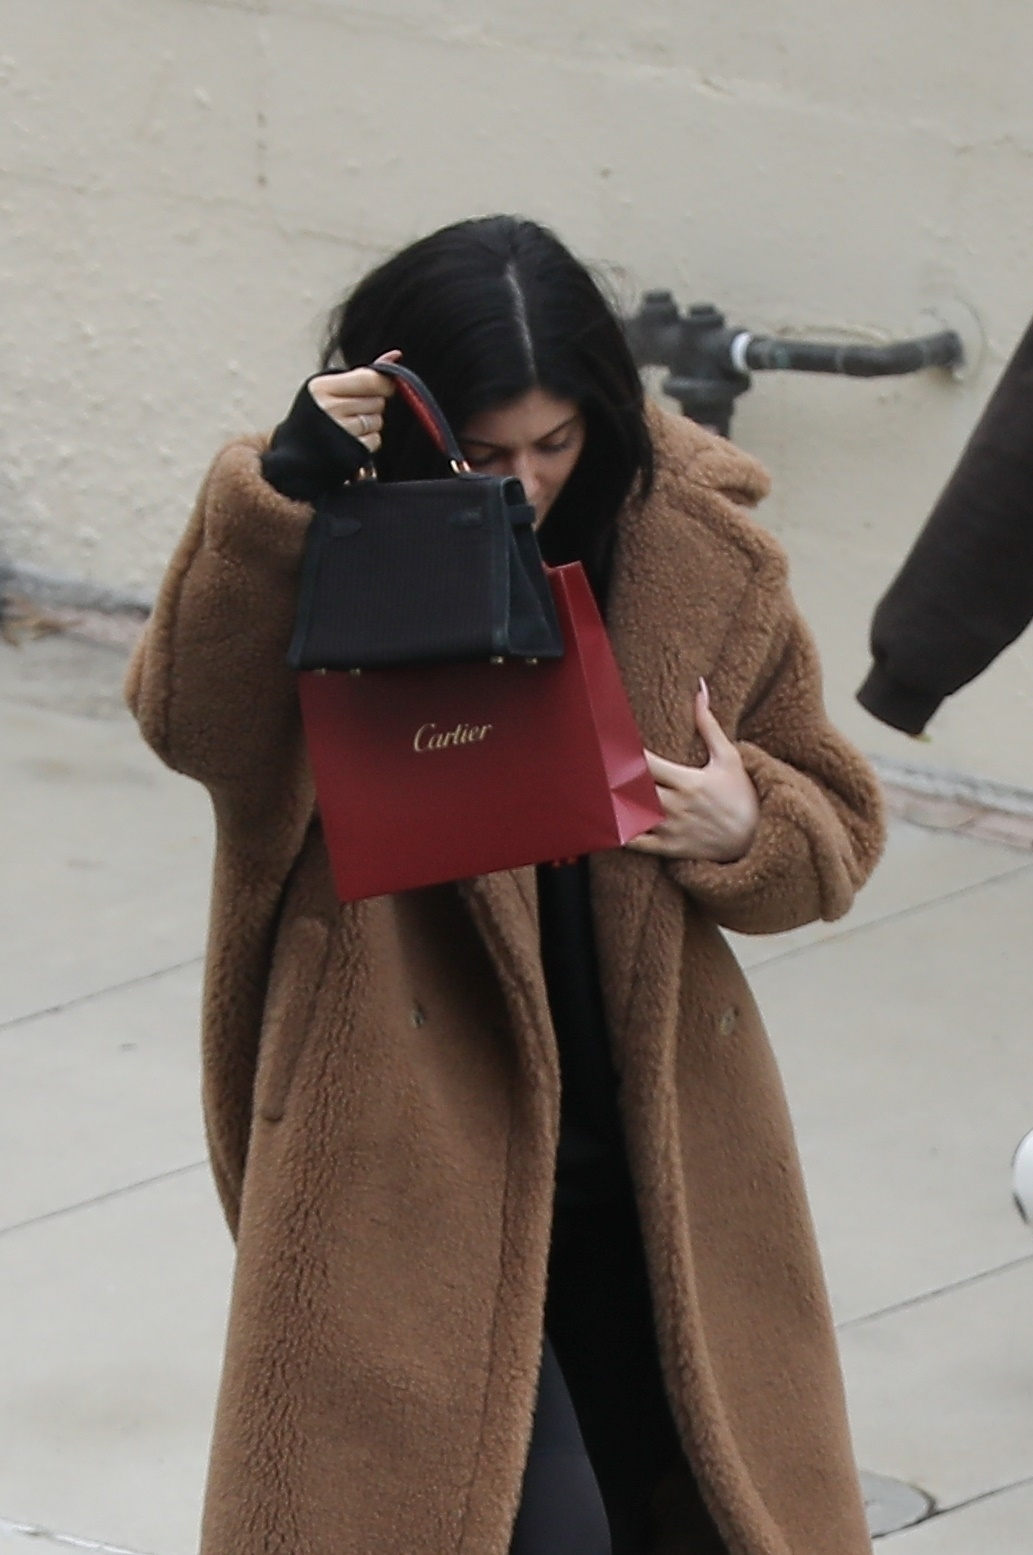 Kylie Jenner steps out for the first time since the news broke that her best friend Jordyn Woods cheated with her sister's man Tristan Thompson